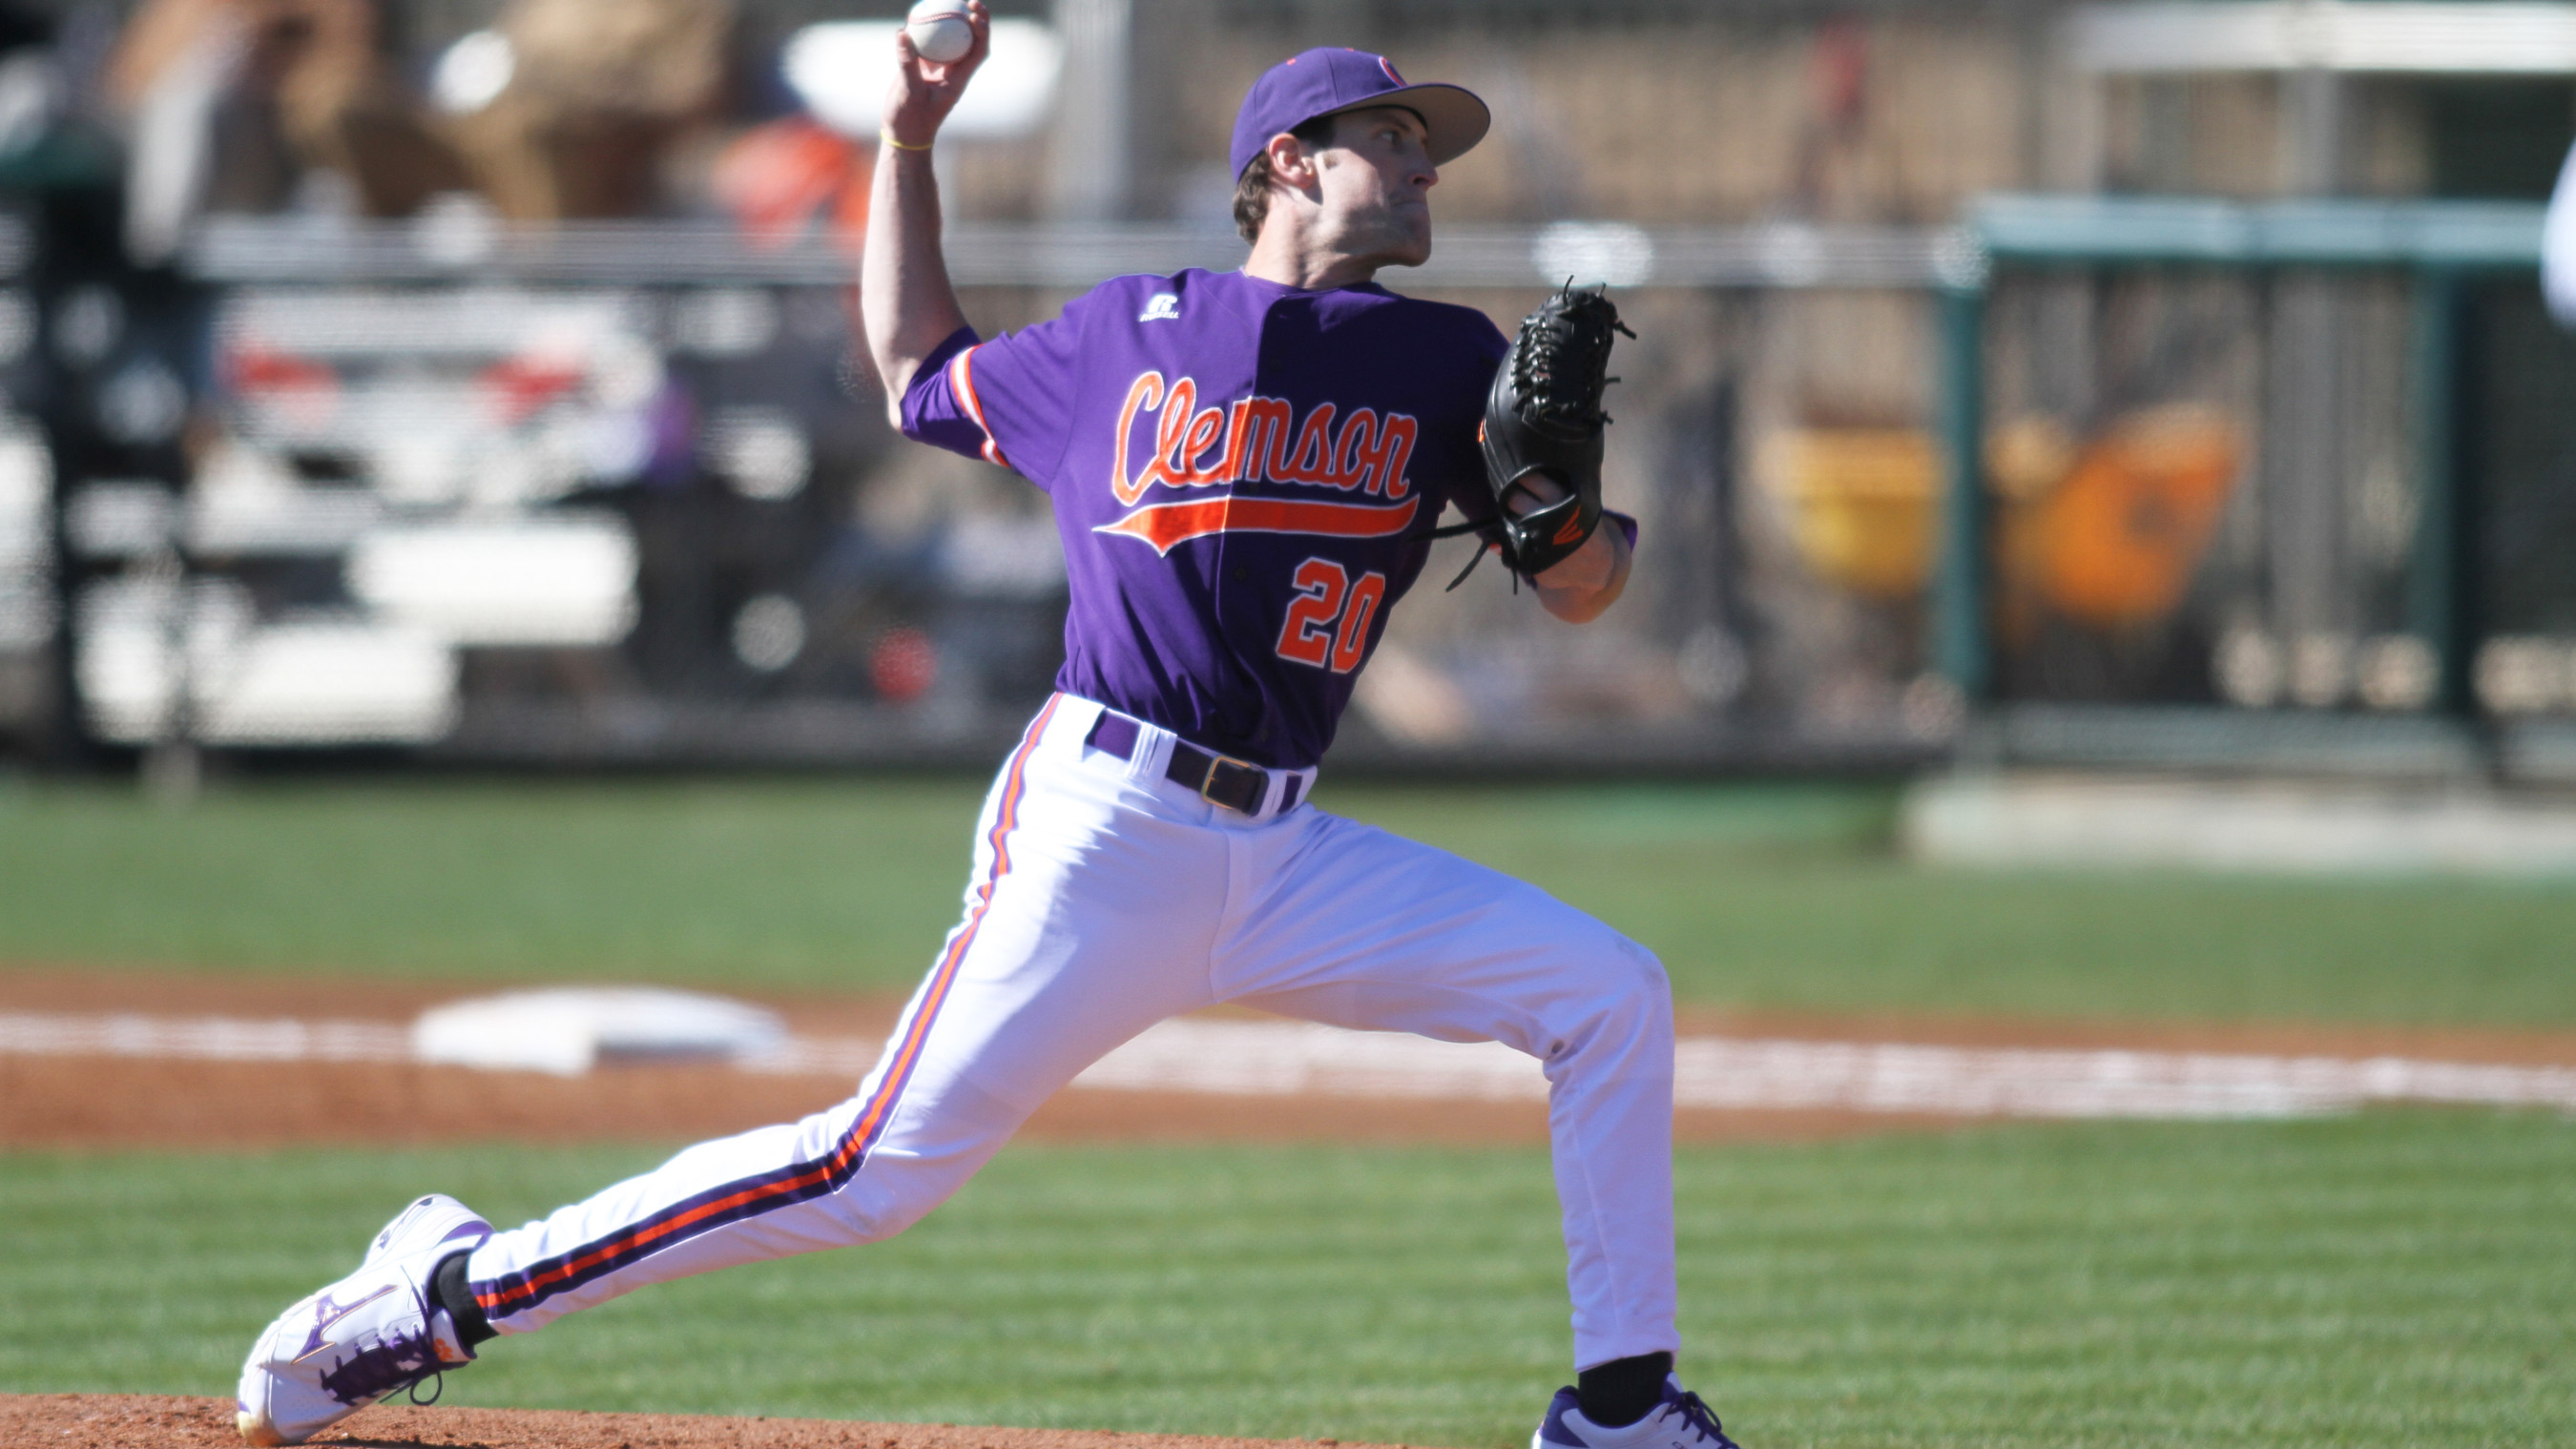 Clemson Completes Sweep With 7-0 Win Over Wright State Sunday